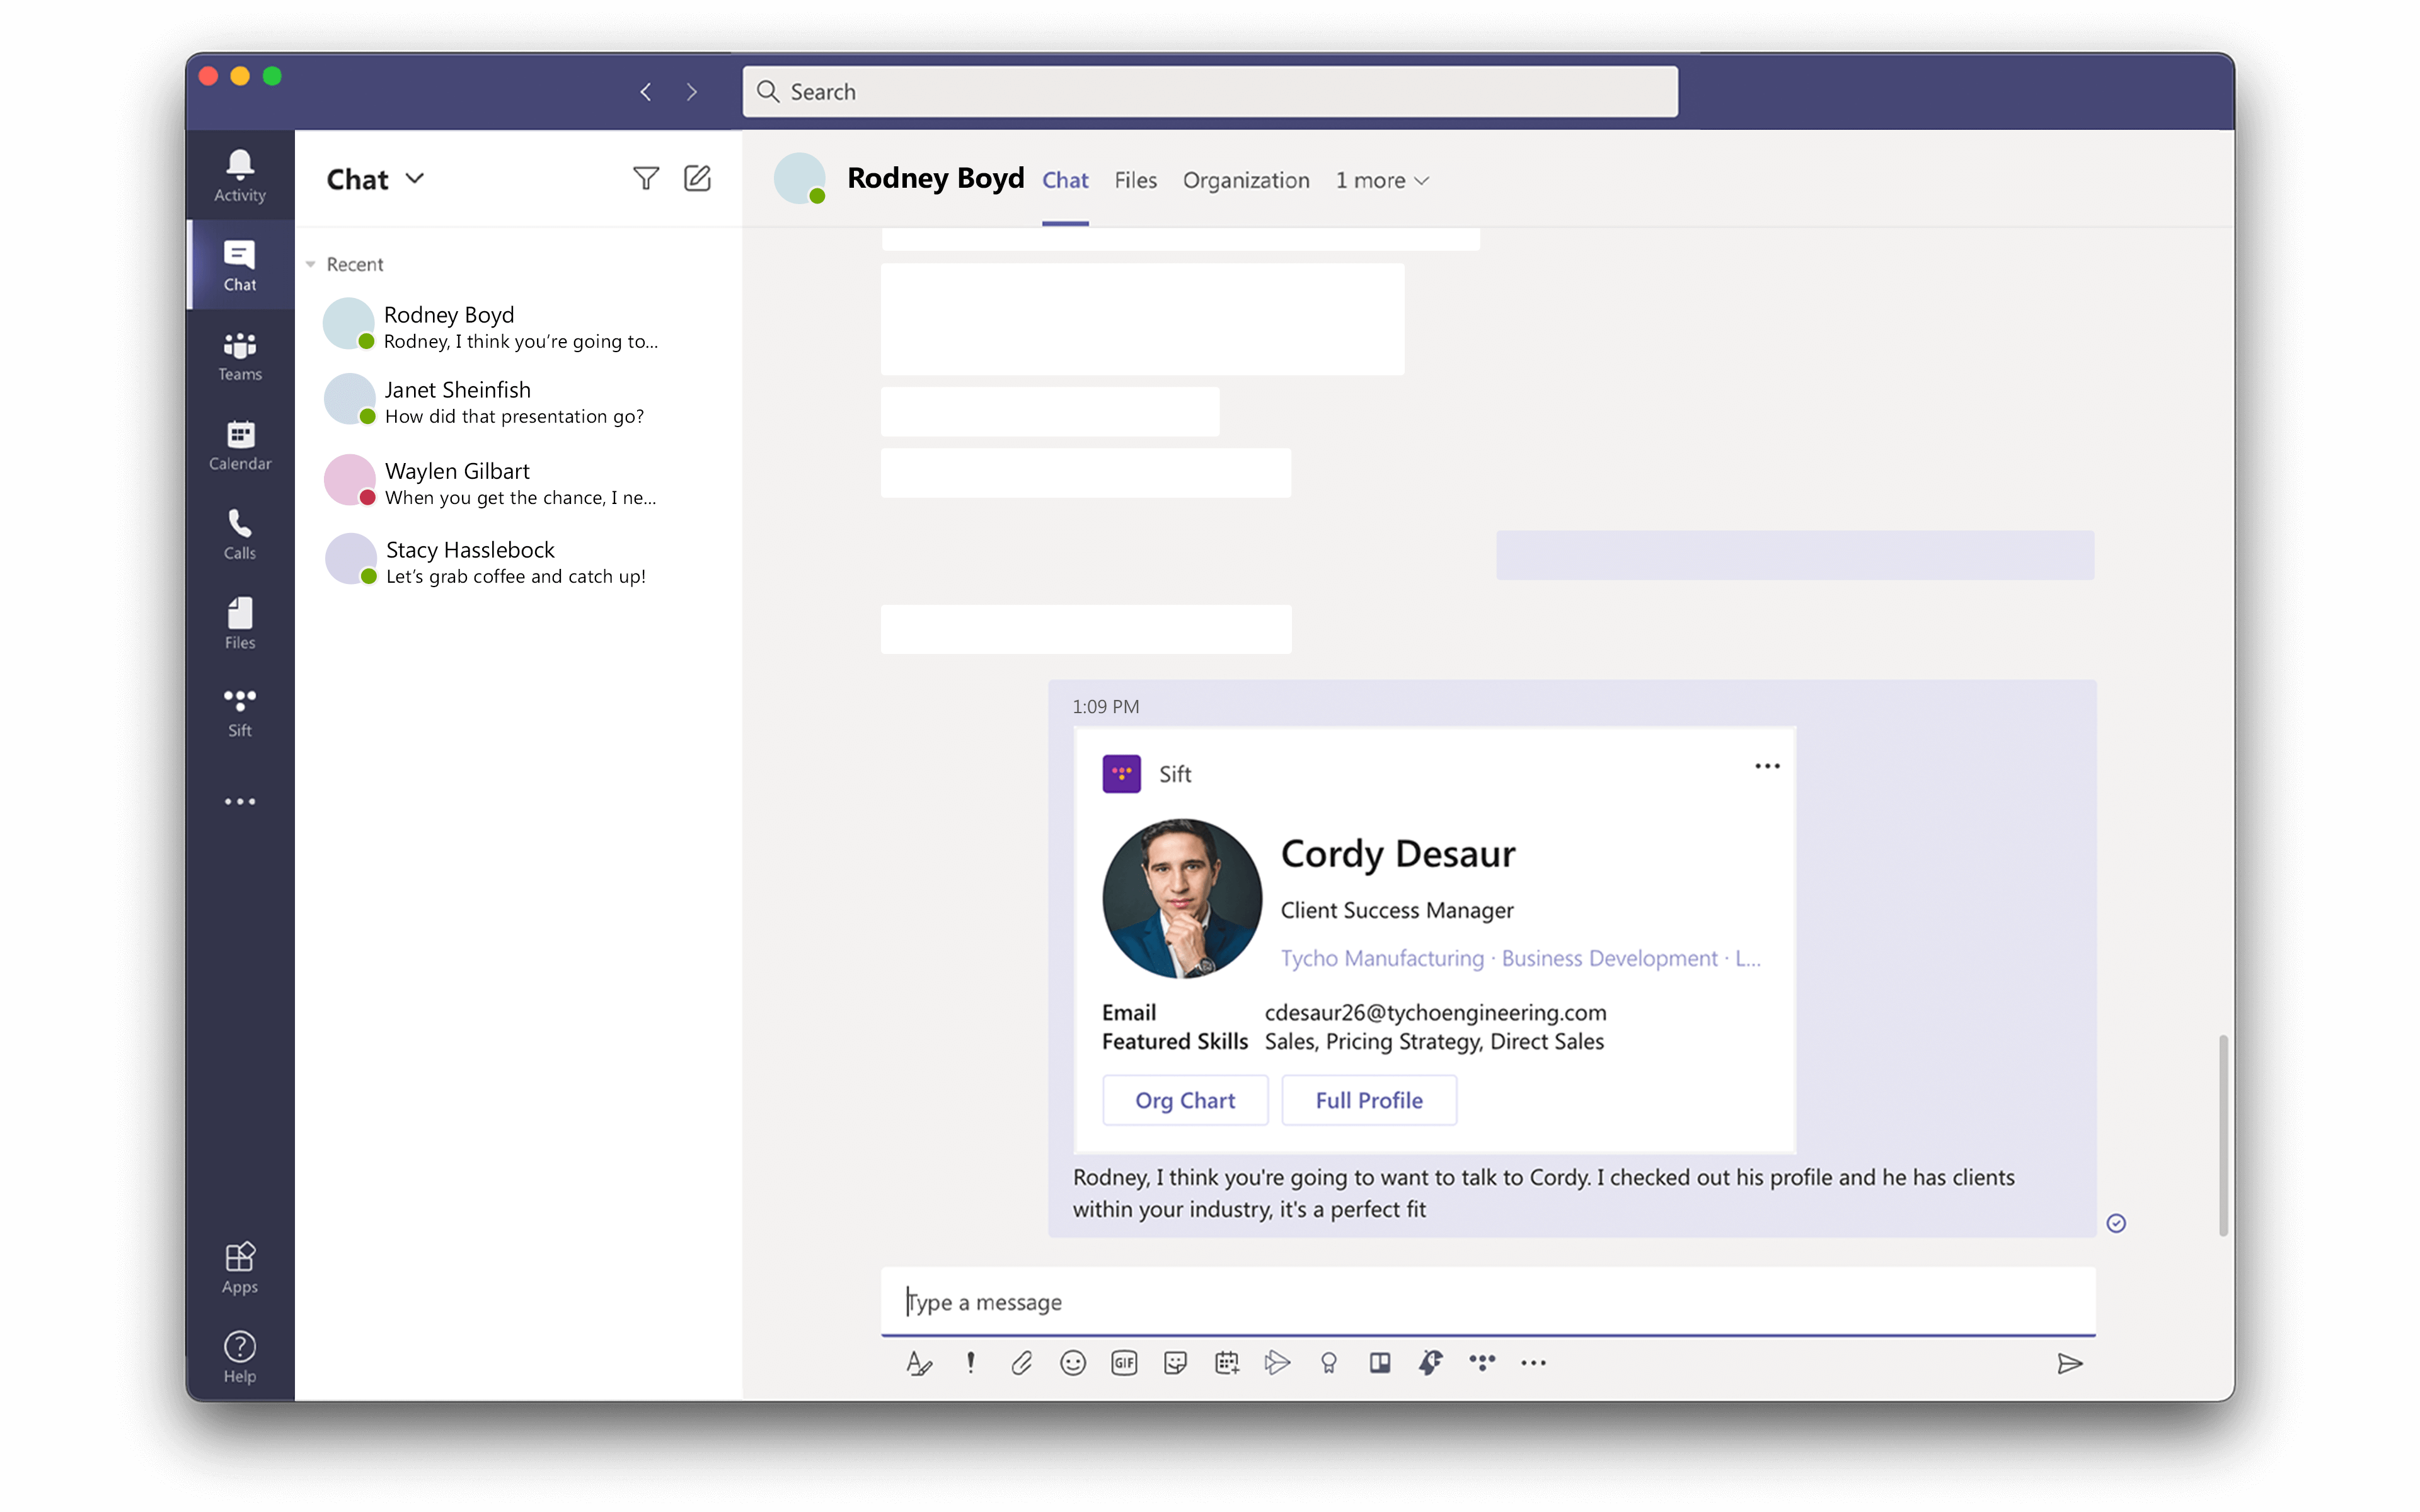 Microsoft Teams with Sift sharing profile in chat conversation